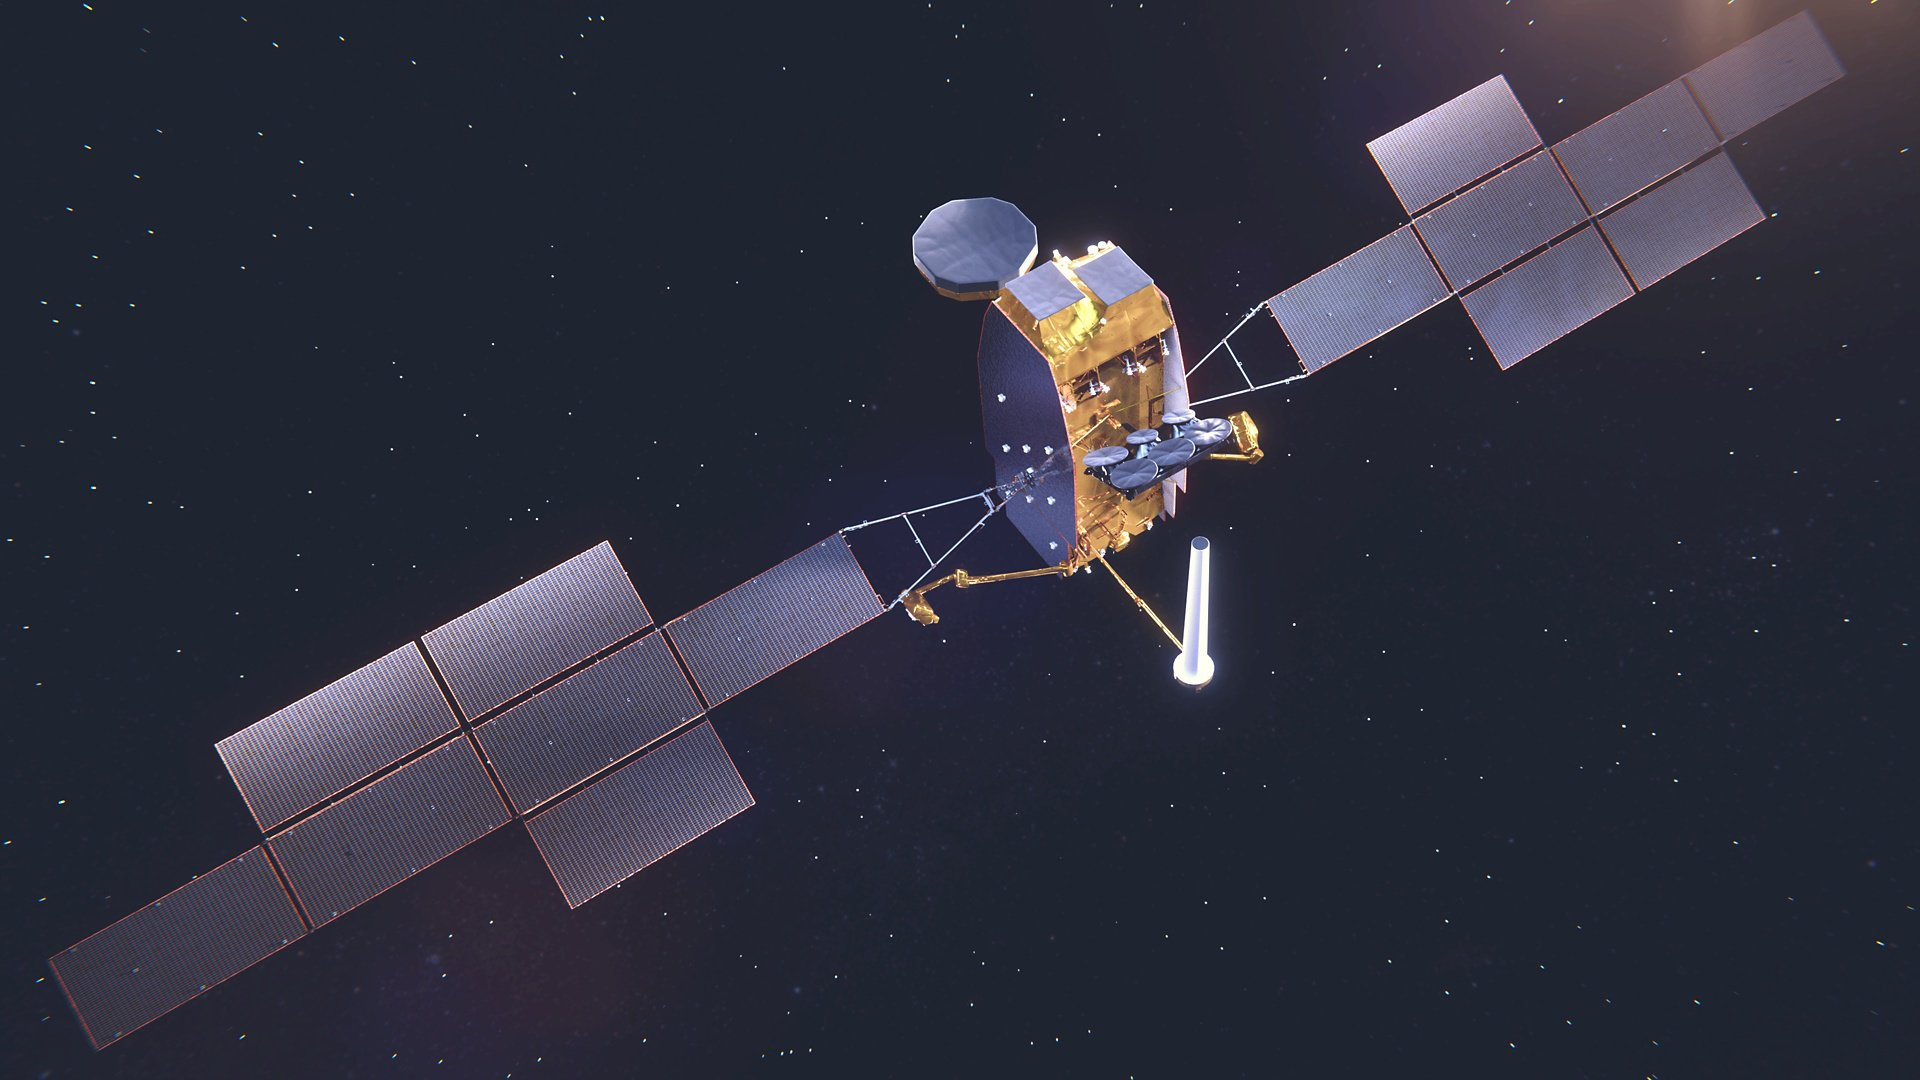 The first of these New Generation SpainSat satellites will be launched at the end of 2023 and the second one a year later, guaranteeing the continuity of secure communications services. 